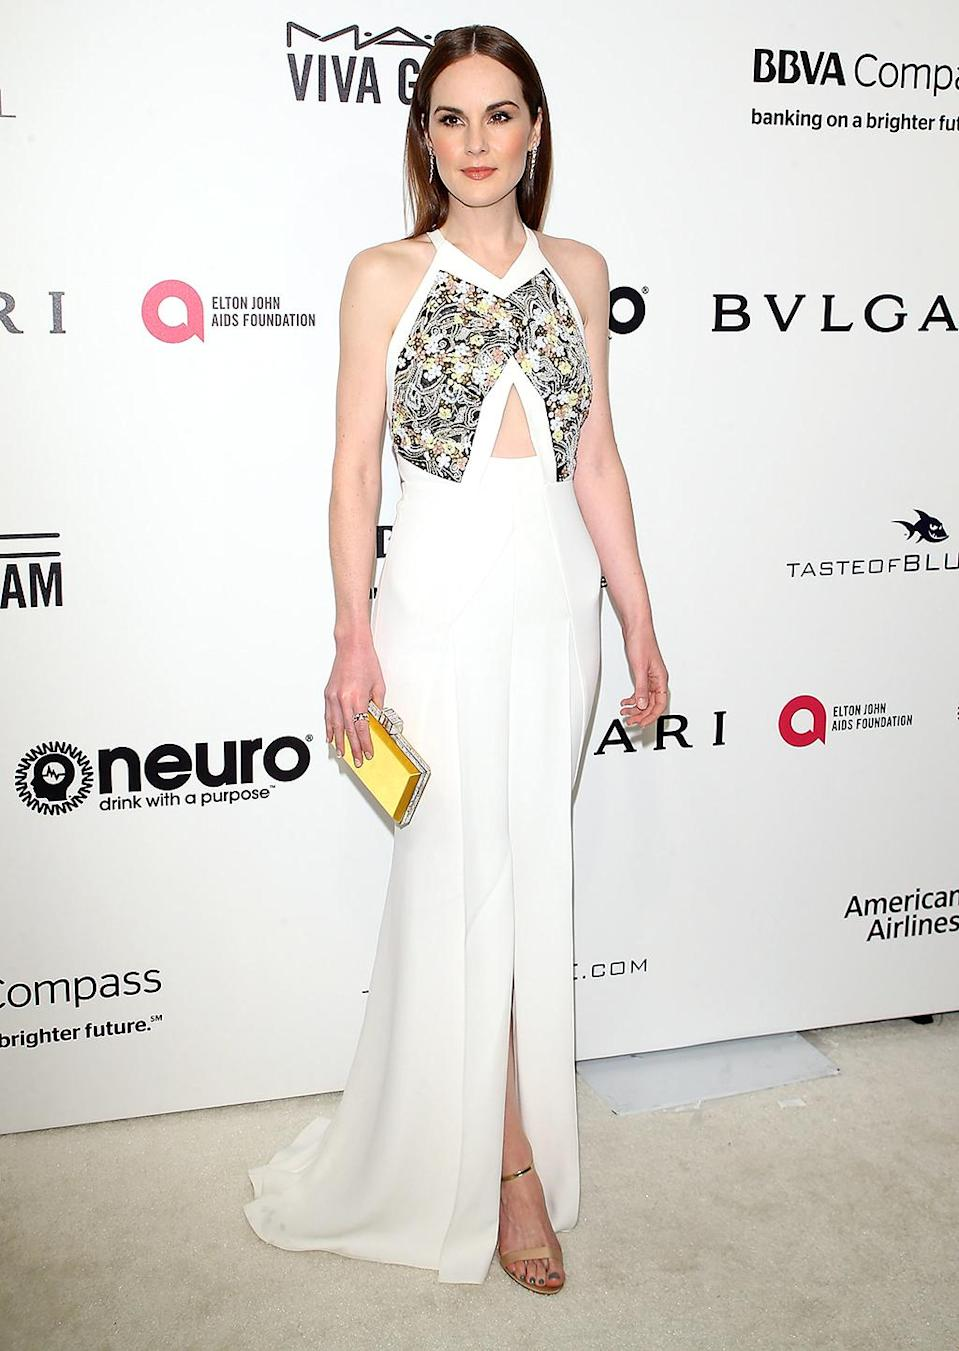 <p>Michelle Dockery arrives at the 25th Annual Elton John AIDS Foundation's Oscar viewing party held at The City of West Hollywood Park on February 26, 2017 in West Hollywood, California. (Photo by Michael Tran/FilmMagic) </p>